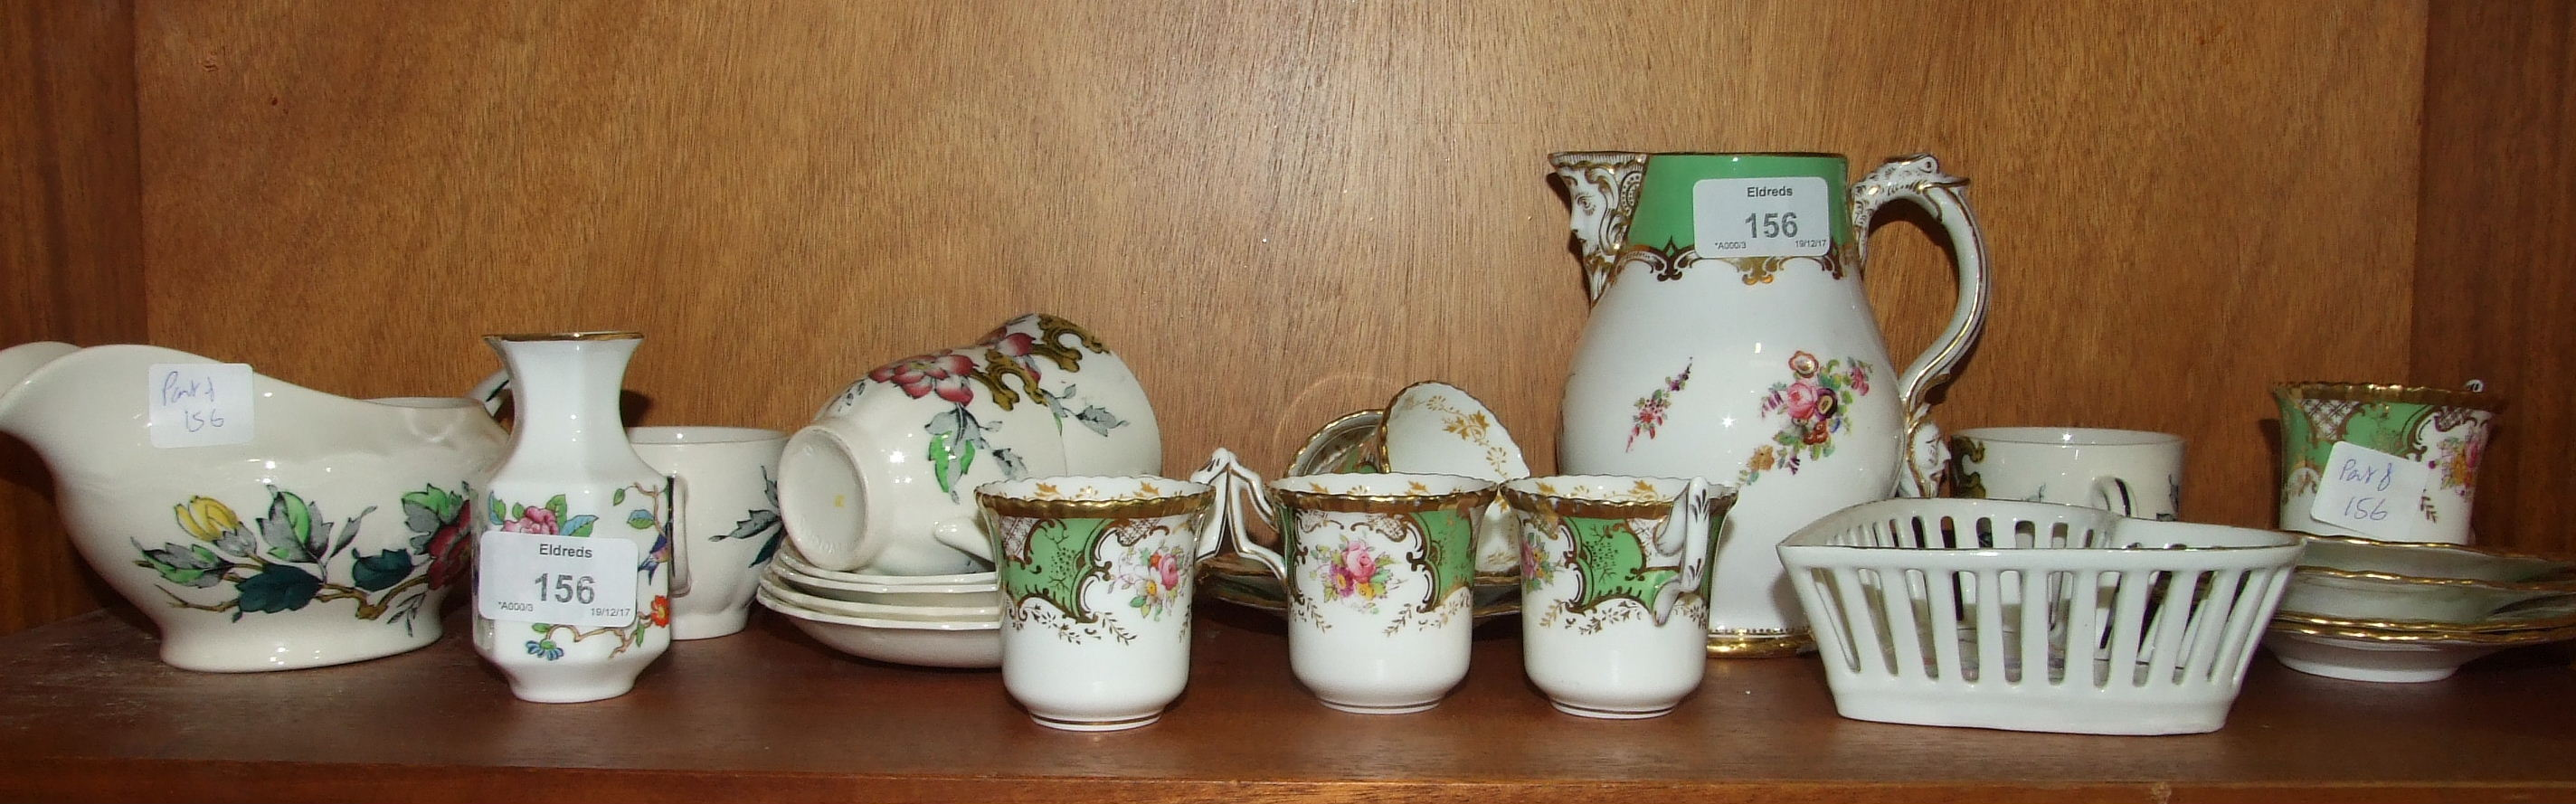 Lot 156 - A Late-Victorian milk jug decorated with gilt, green and floral sprays, 14cm high, six Coalport